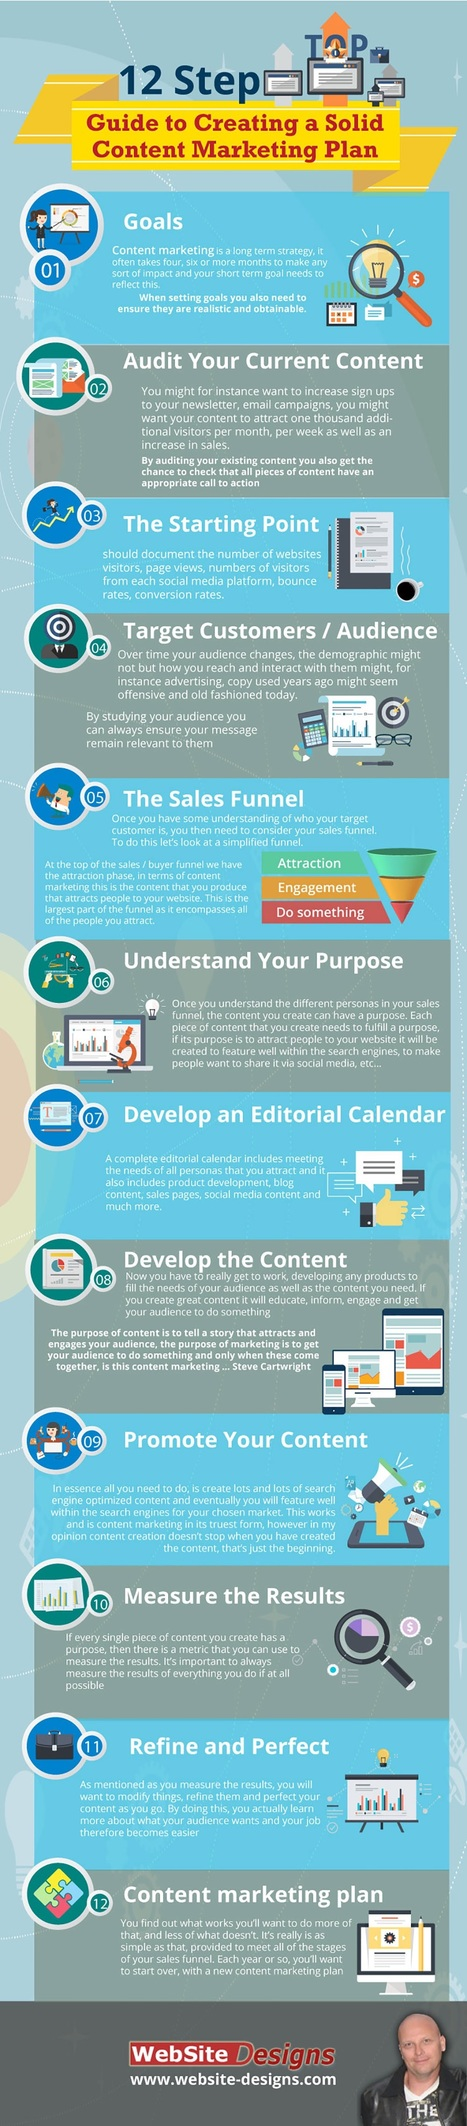 How To Create a Solid Content Marketing Plan #infographic | MarketingHits | Scoop.it